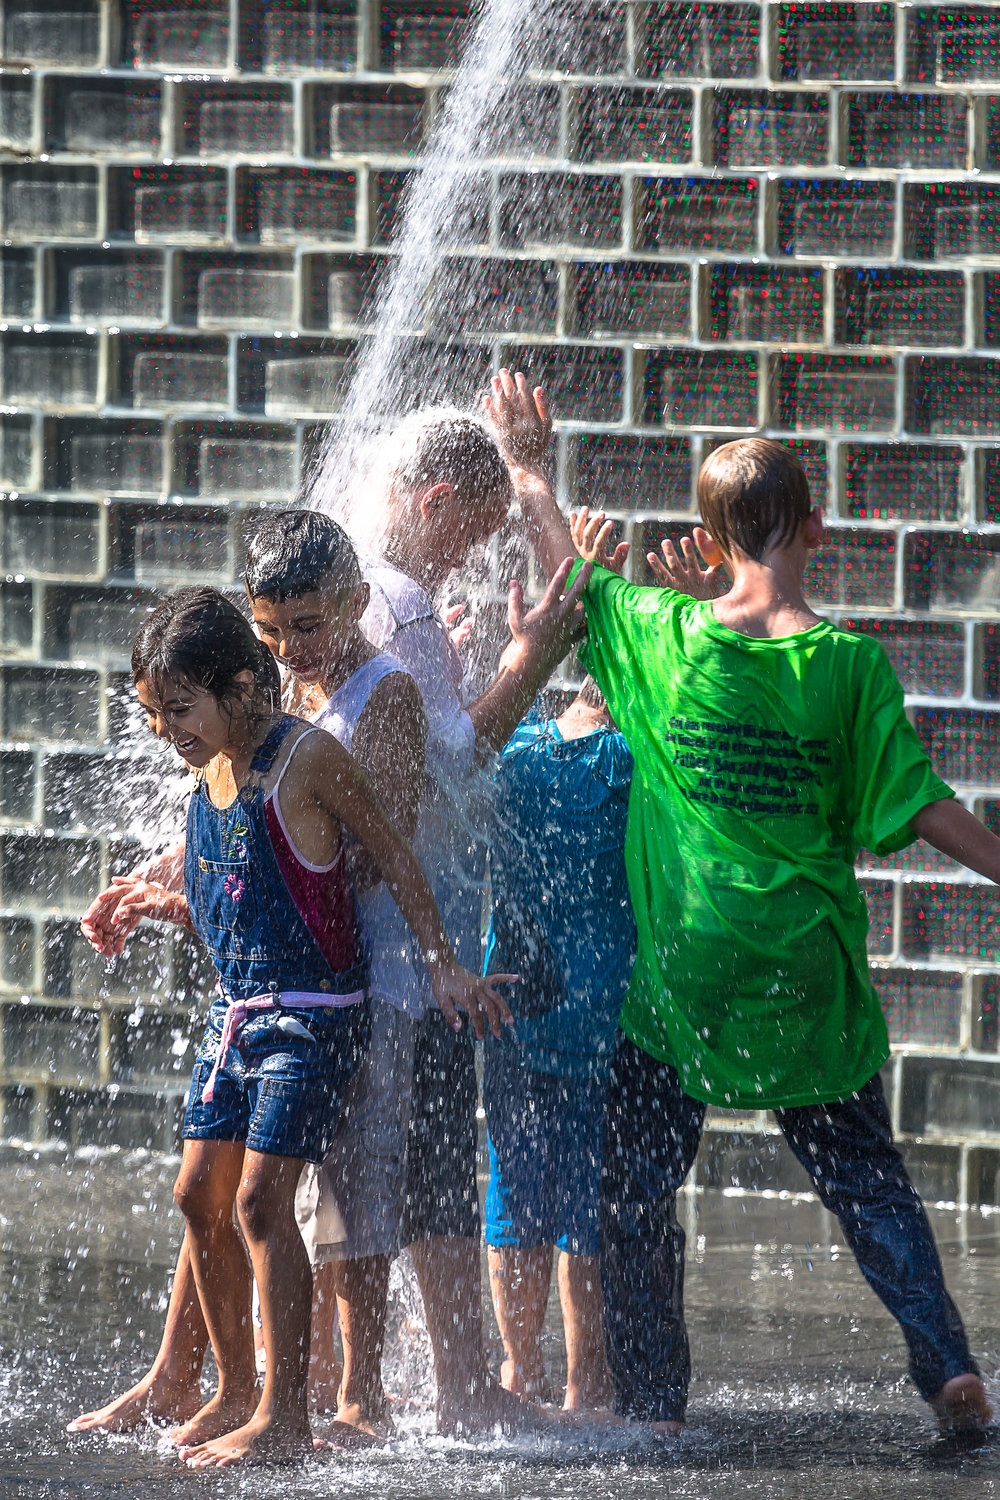 12.  - Give the kids a chance to run and play at Maggie Daley park and then walk over to Millennium Park Crown Fountain to splash it up. It's a great way to cool off on a hot summer day!